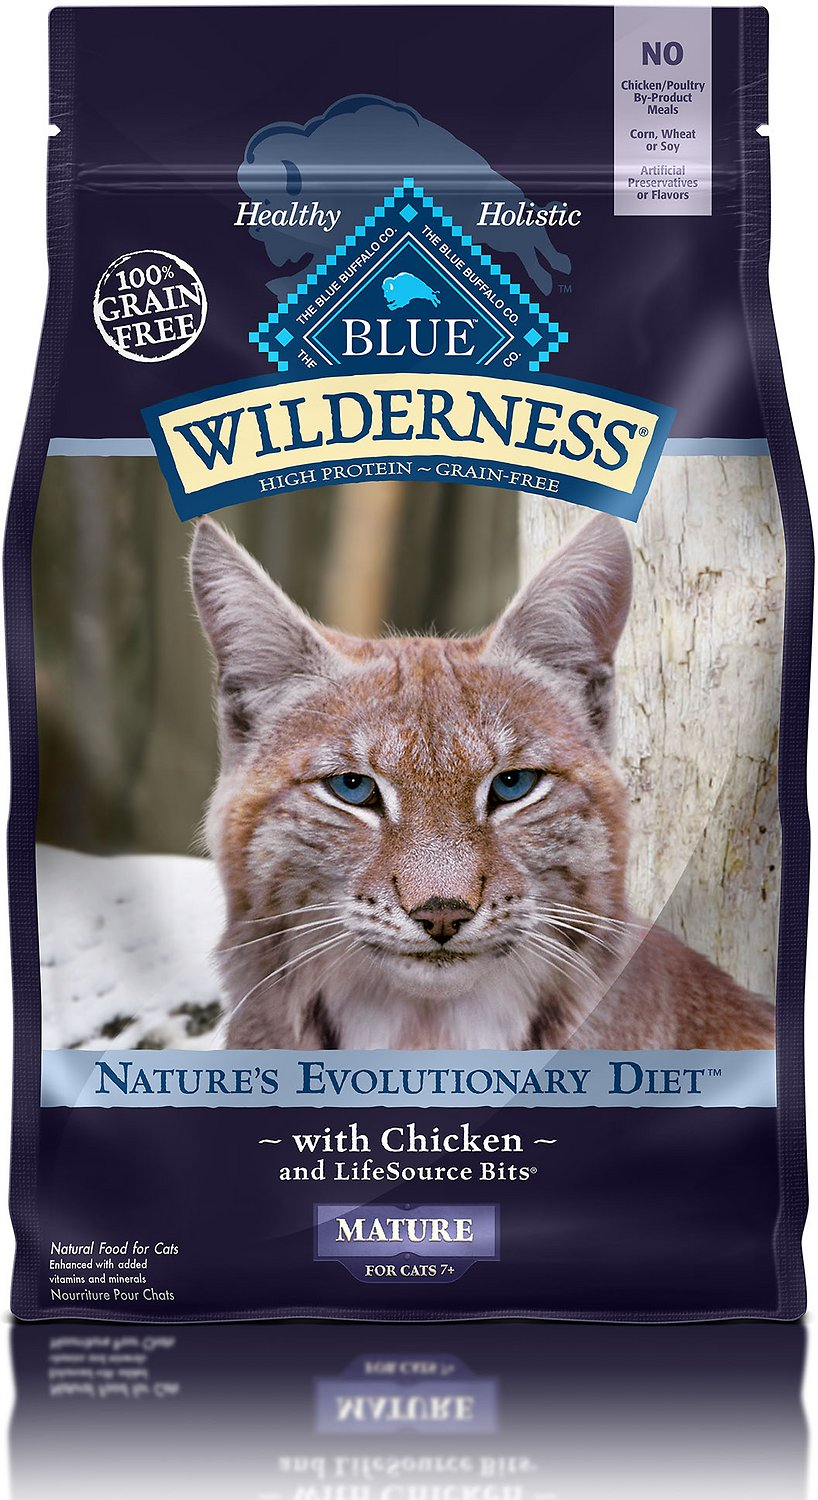 Blue Buffalo Wilderness Mature Chicken Recipe Grain-Free Dry Cat Food Image